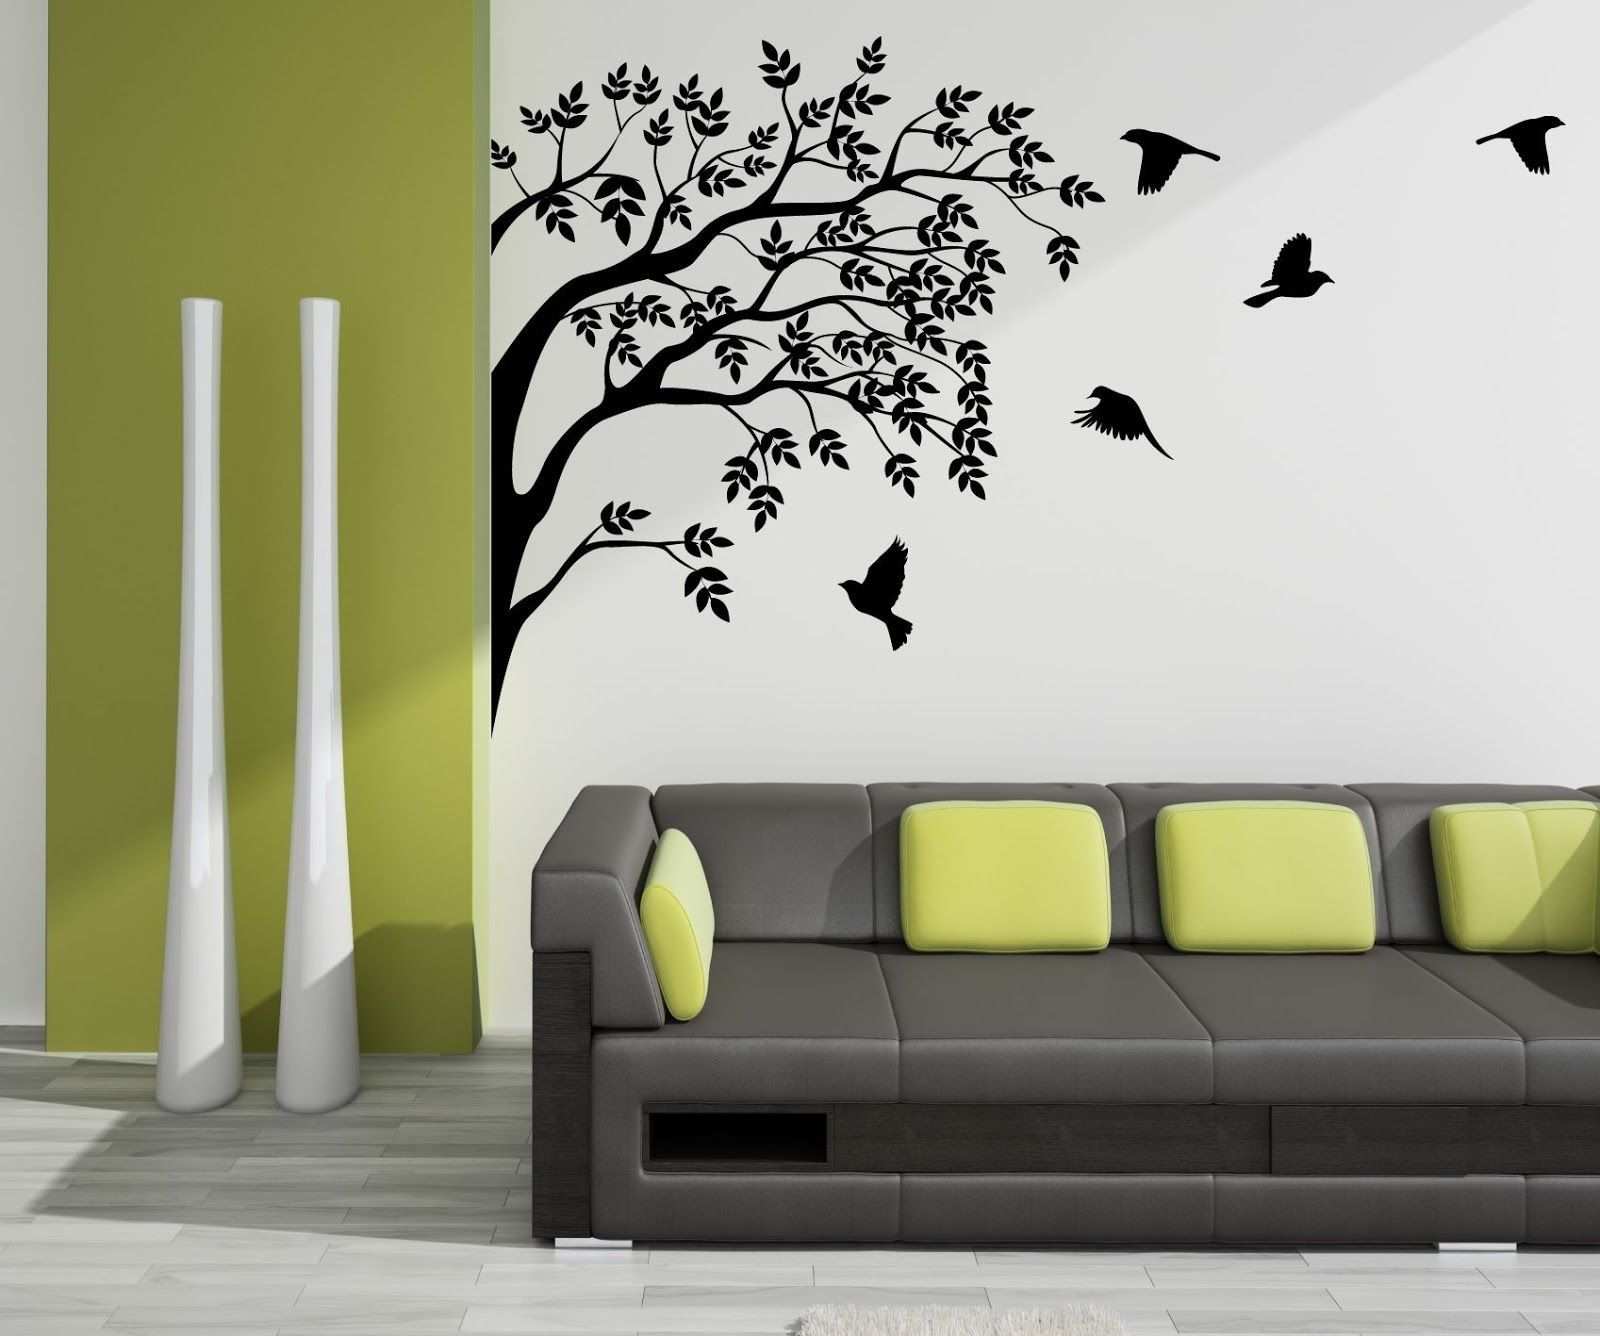 Creative Photo Of Creative Wall Painting Ideas Bedroom Wall Designs Home Decor Wall Art Simple Wall Art